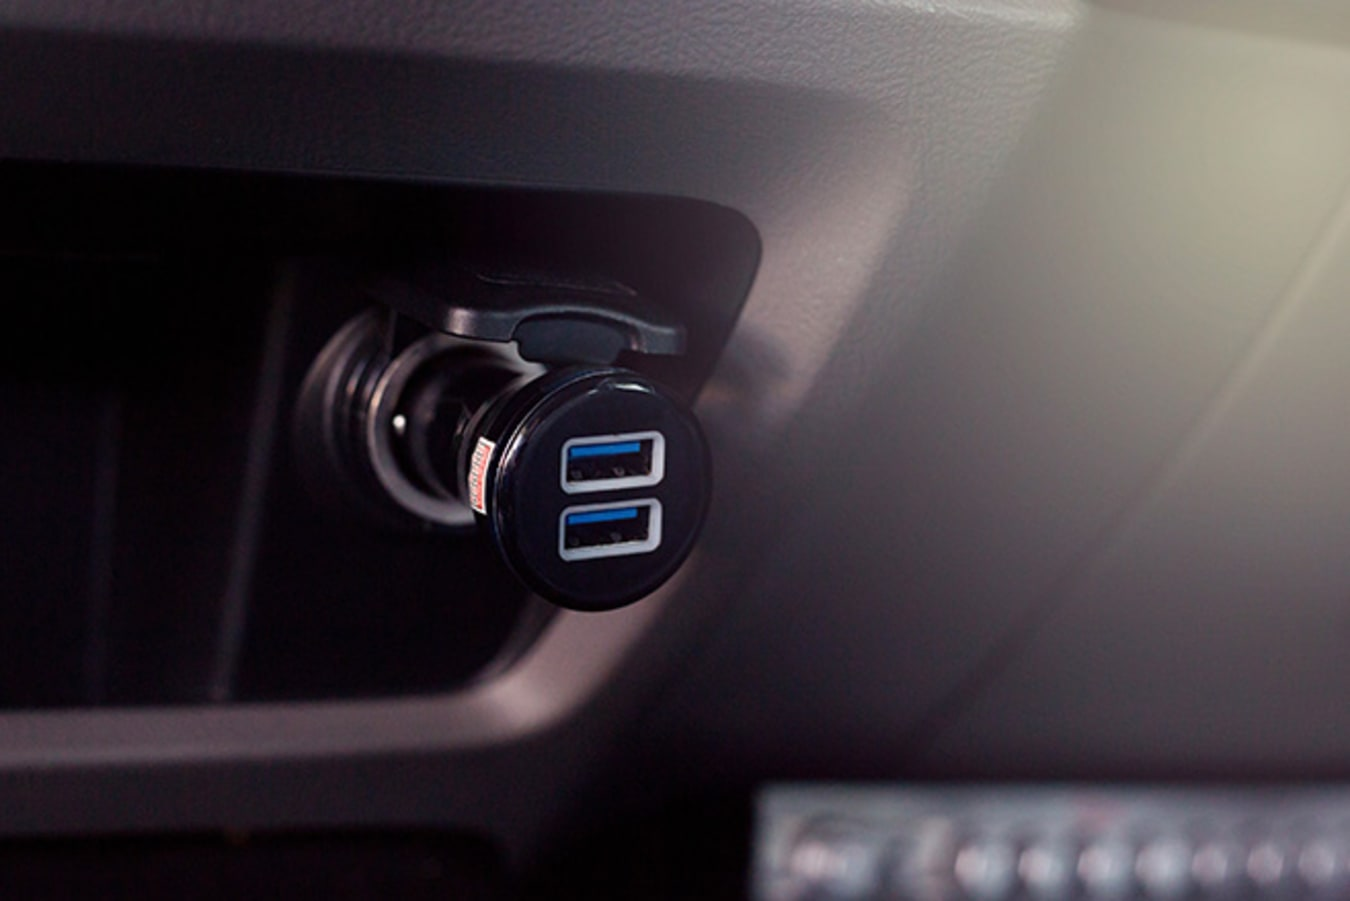 USB charger in car